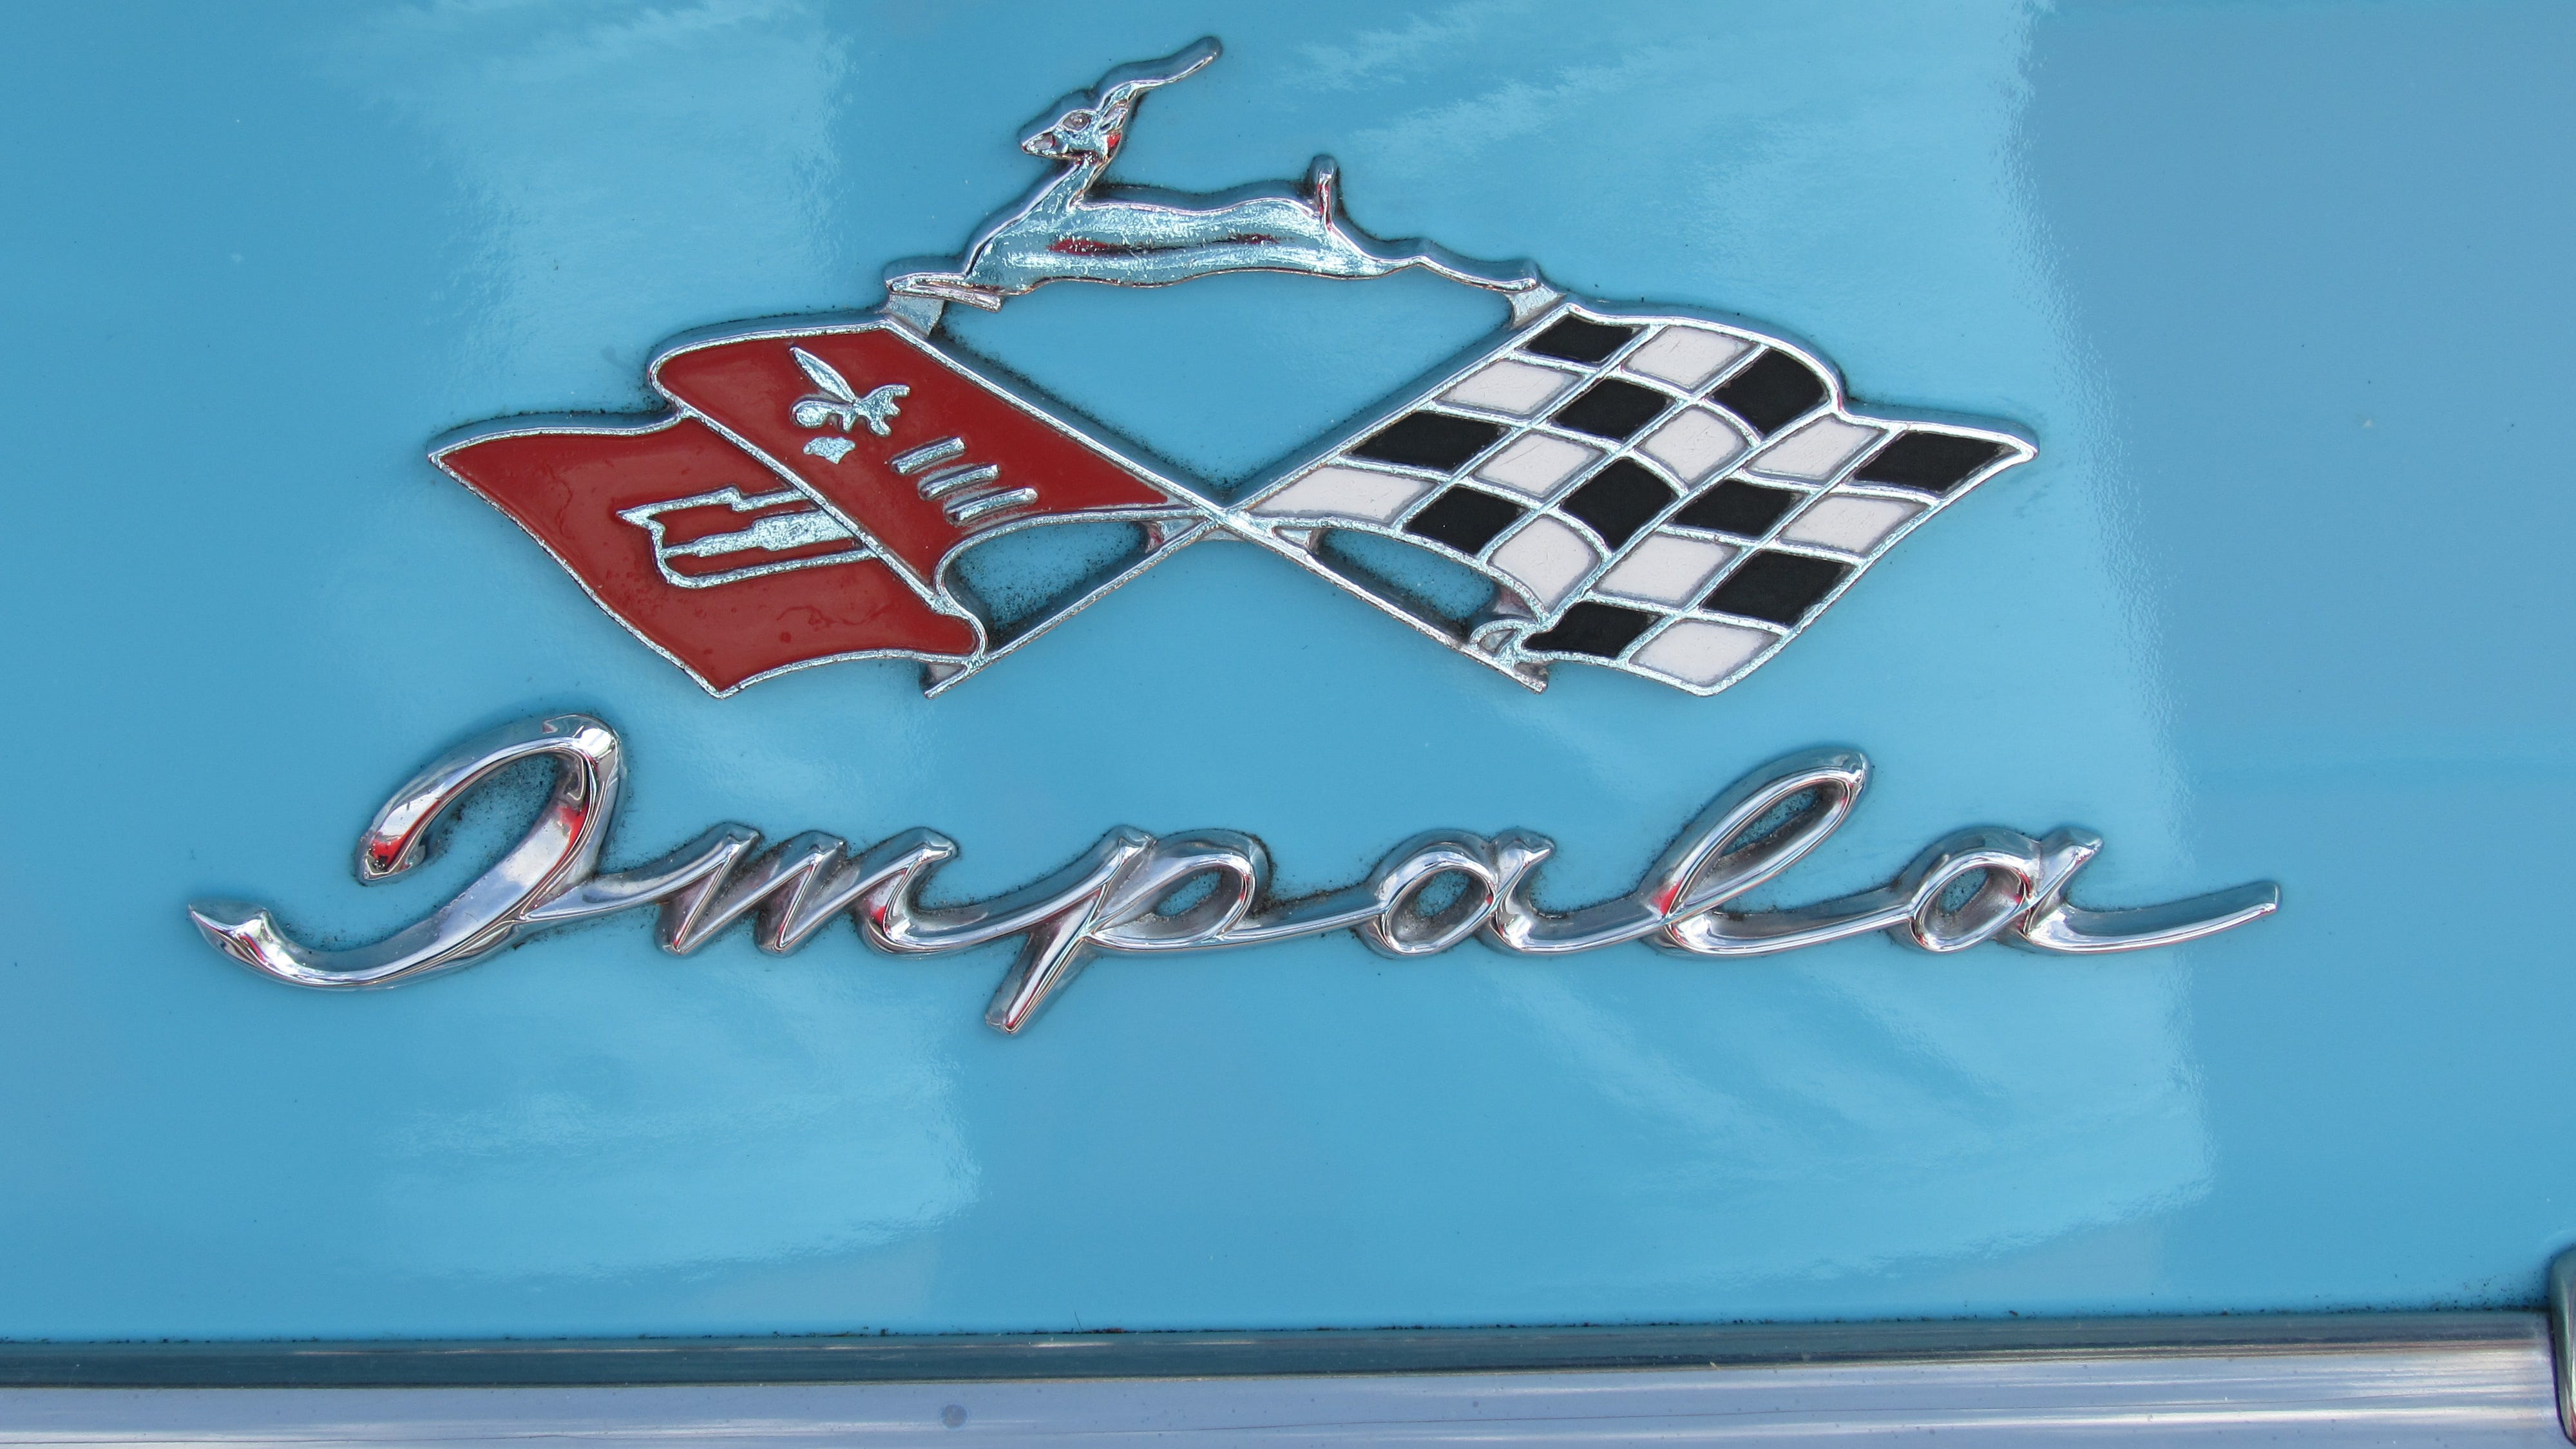 There are many decorative parts to cars, including logos such as this Impala's.